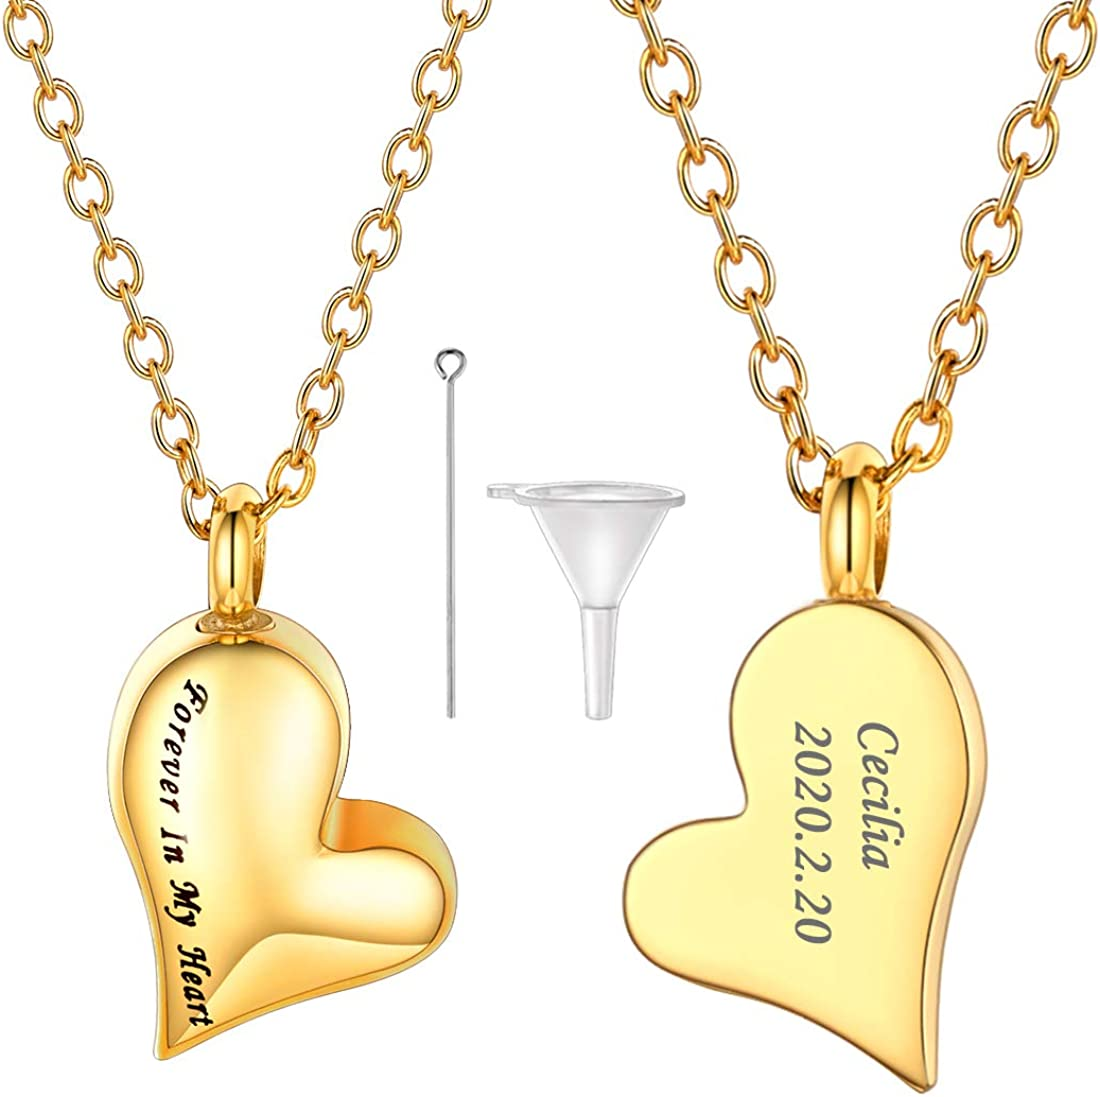 U7 Customize Cremation Jewelry for Ashes Stainless Steel Memorial Keepsakes Urn Locket Necklace with Fill Kit and Gift Box